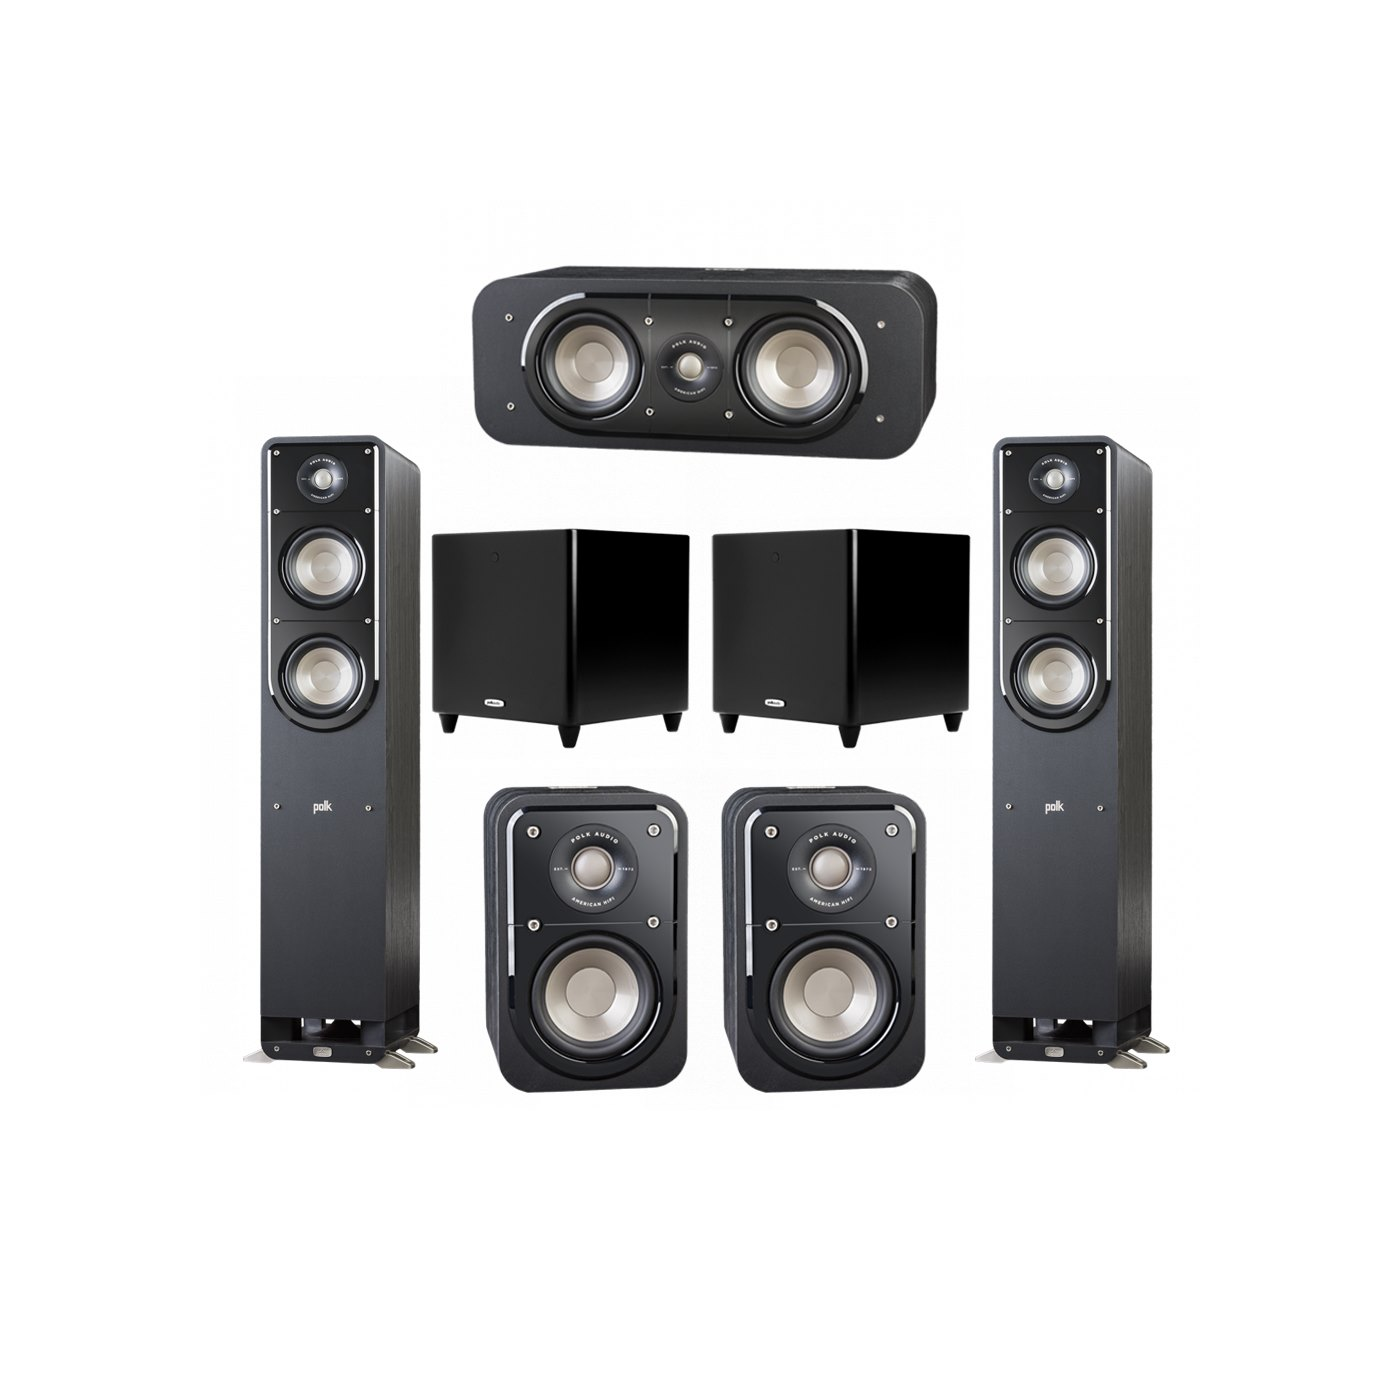 Polk Audio Signature 5.2 System with 2 S50 Tower Speaker, 1 Polk S30 Center Speaker, 2 Polk S10 Surround Speaker, 2 Polk DSW PRO 550 wi Subwoofer